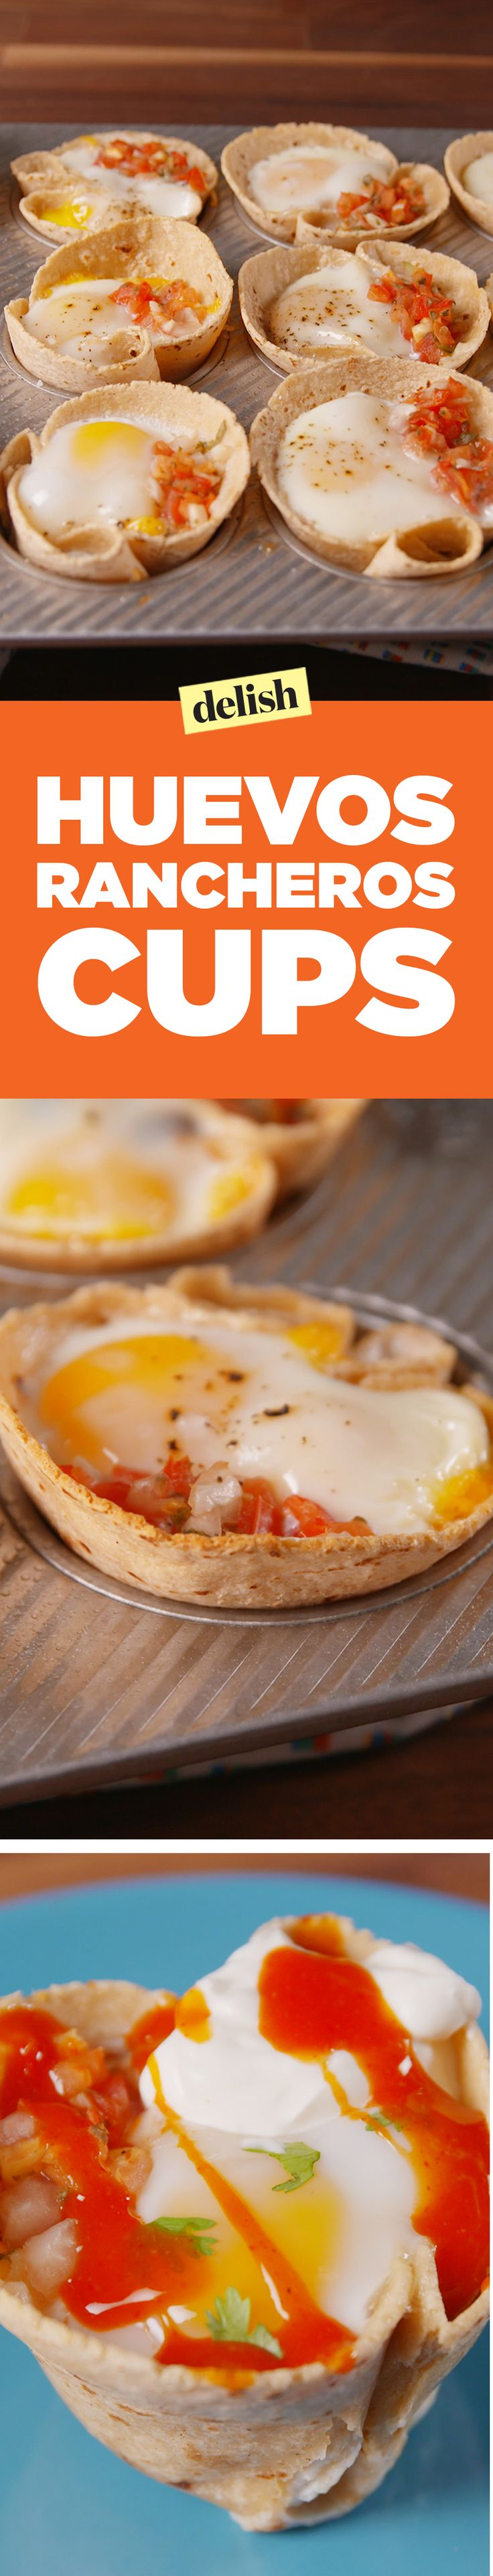 Muffin tin huevos rancheros cups are the easiest way to feed a hungry brunch crowd. Get the recipe on Delish.com.